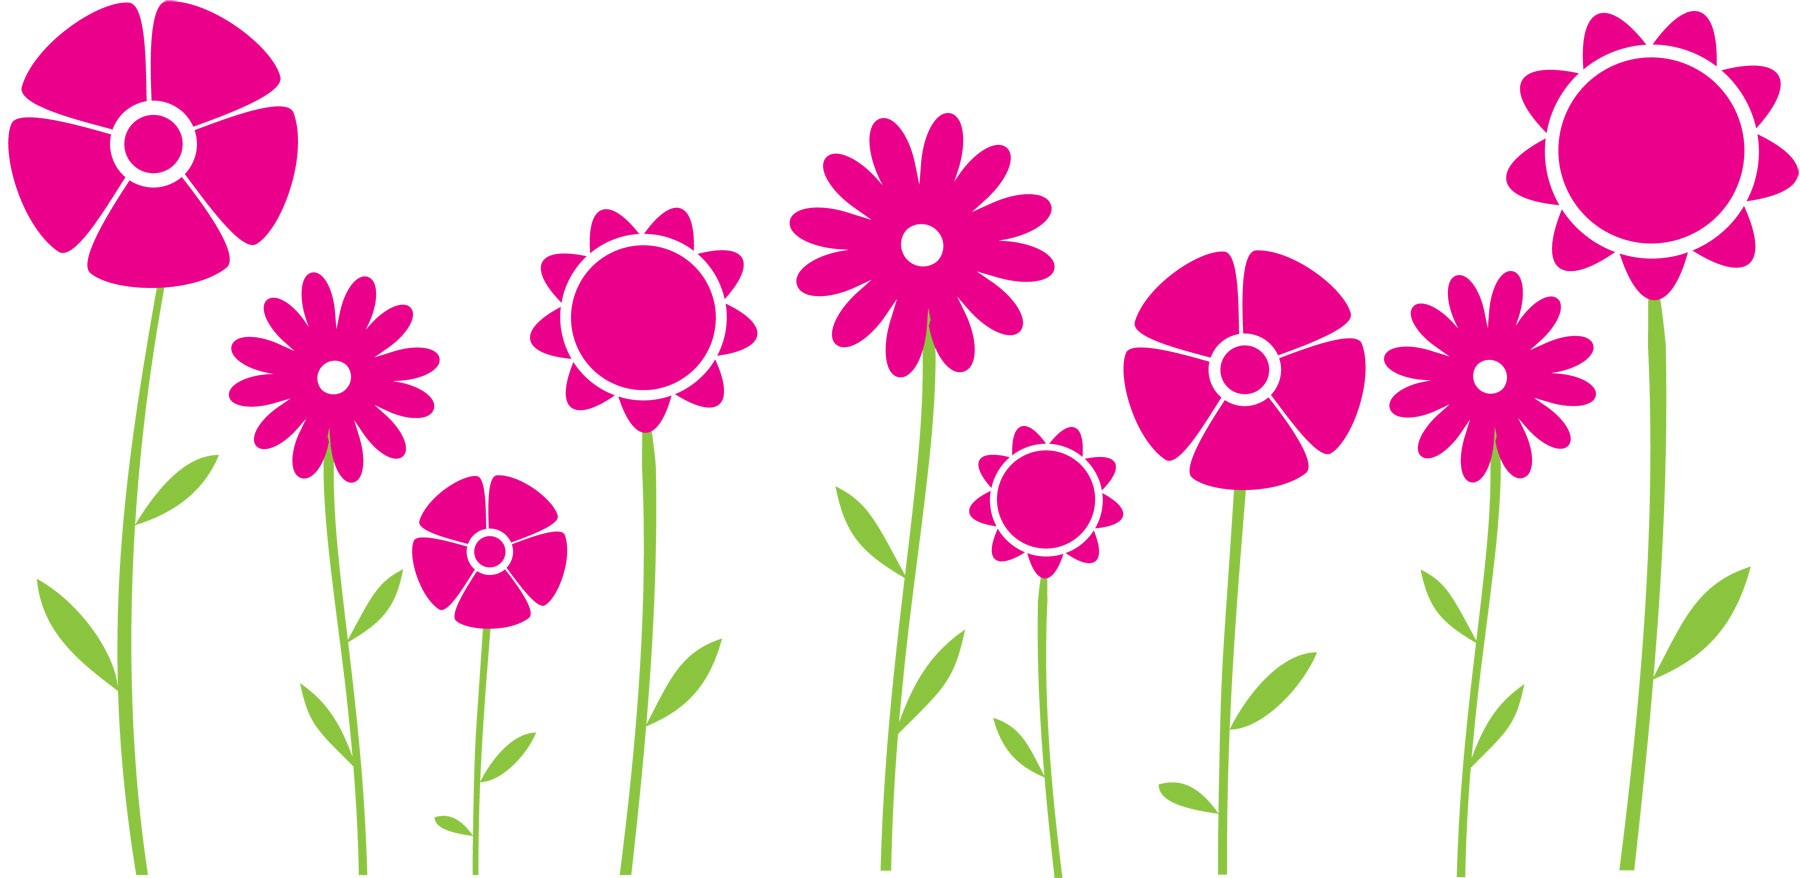 Row of flowers clipart - ClipartFest image transparent